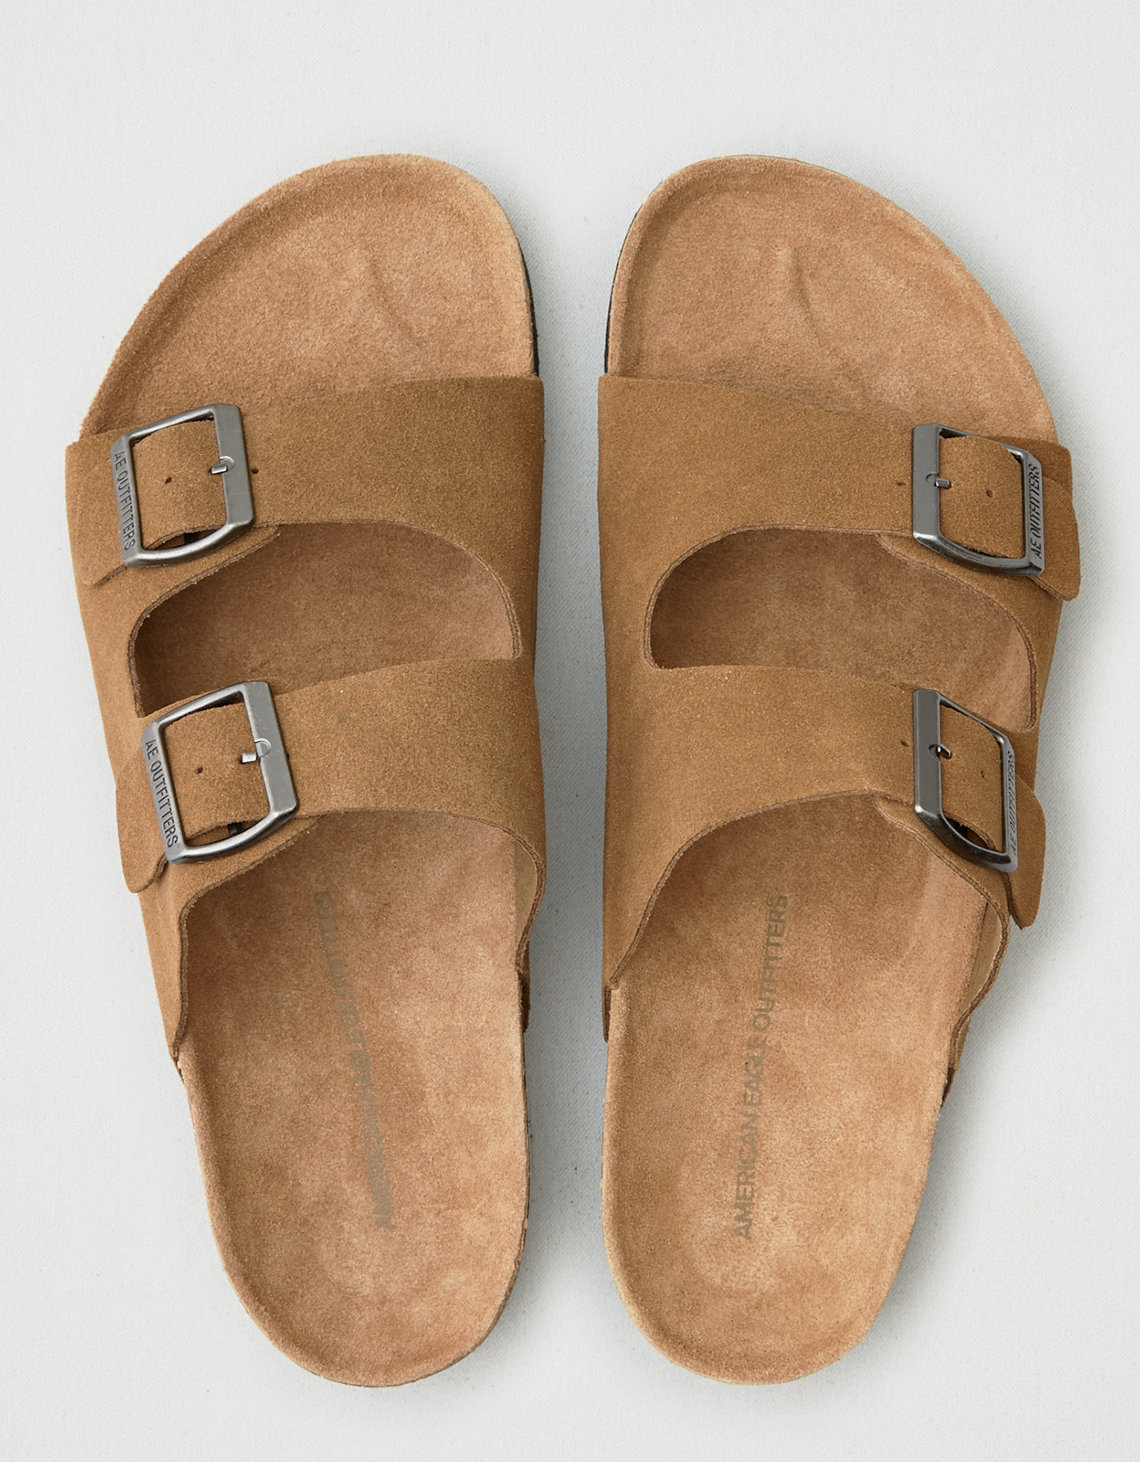 99a97897c24b AEO Suede Double Buckle Sandal. Placeholder image. Product Image